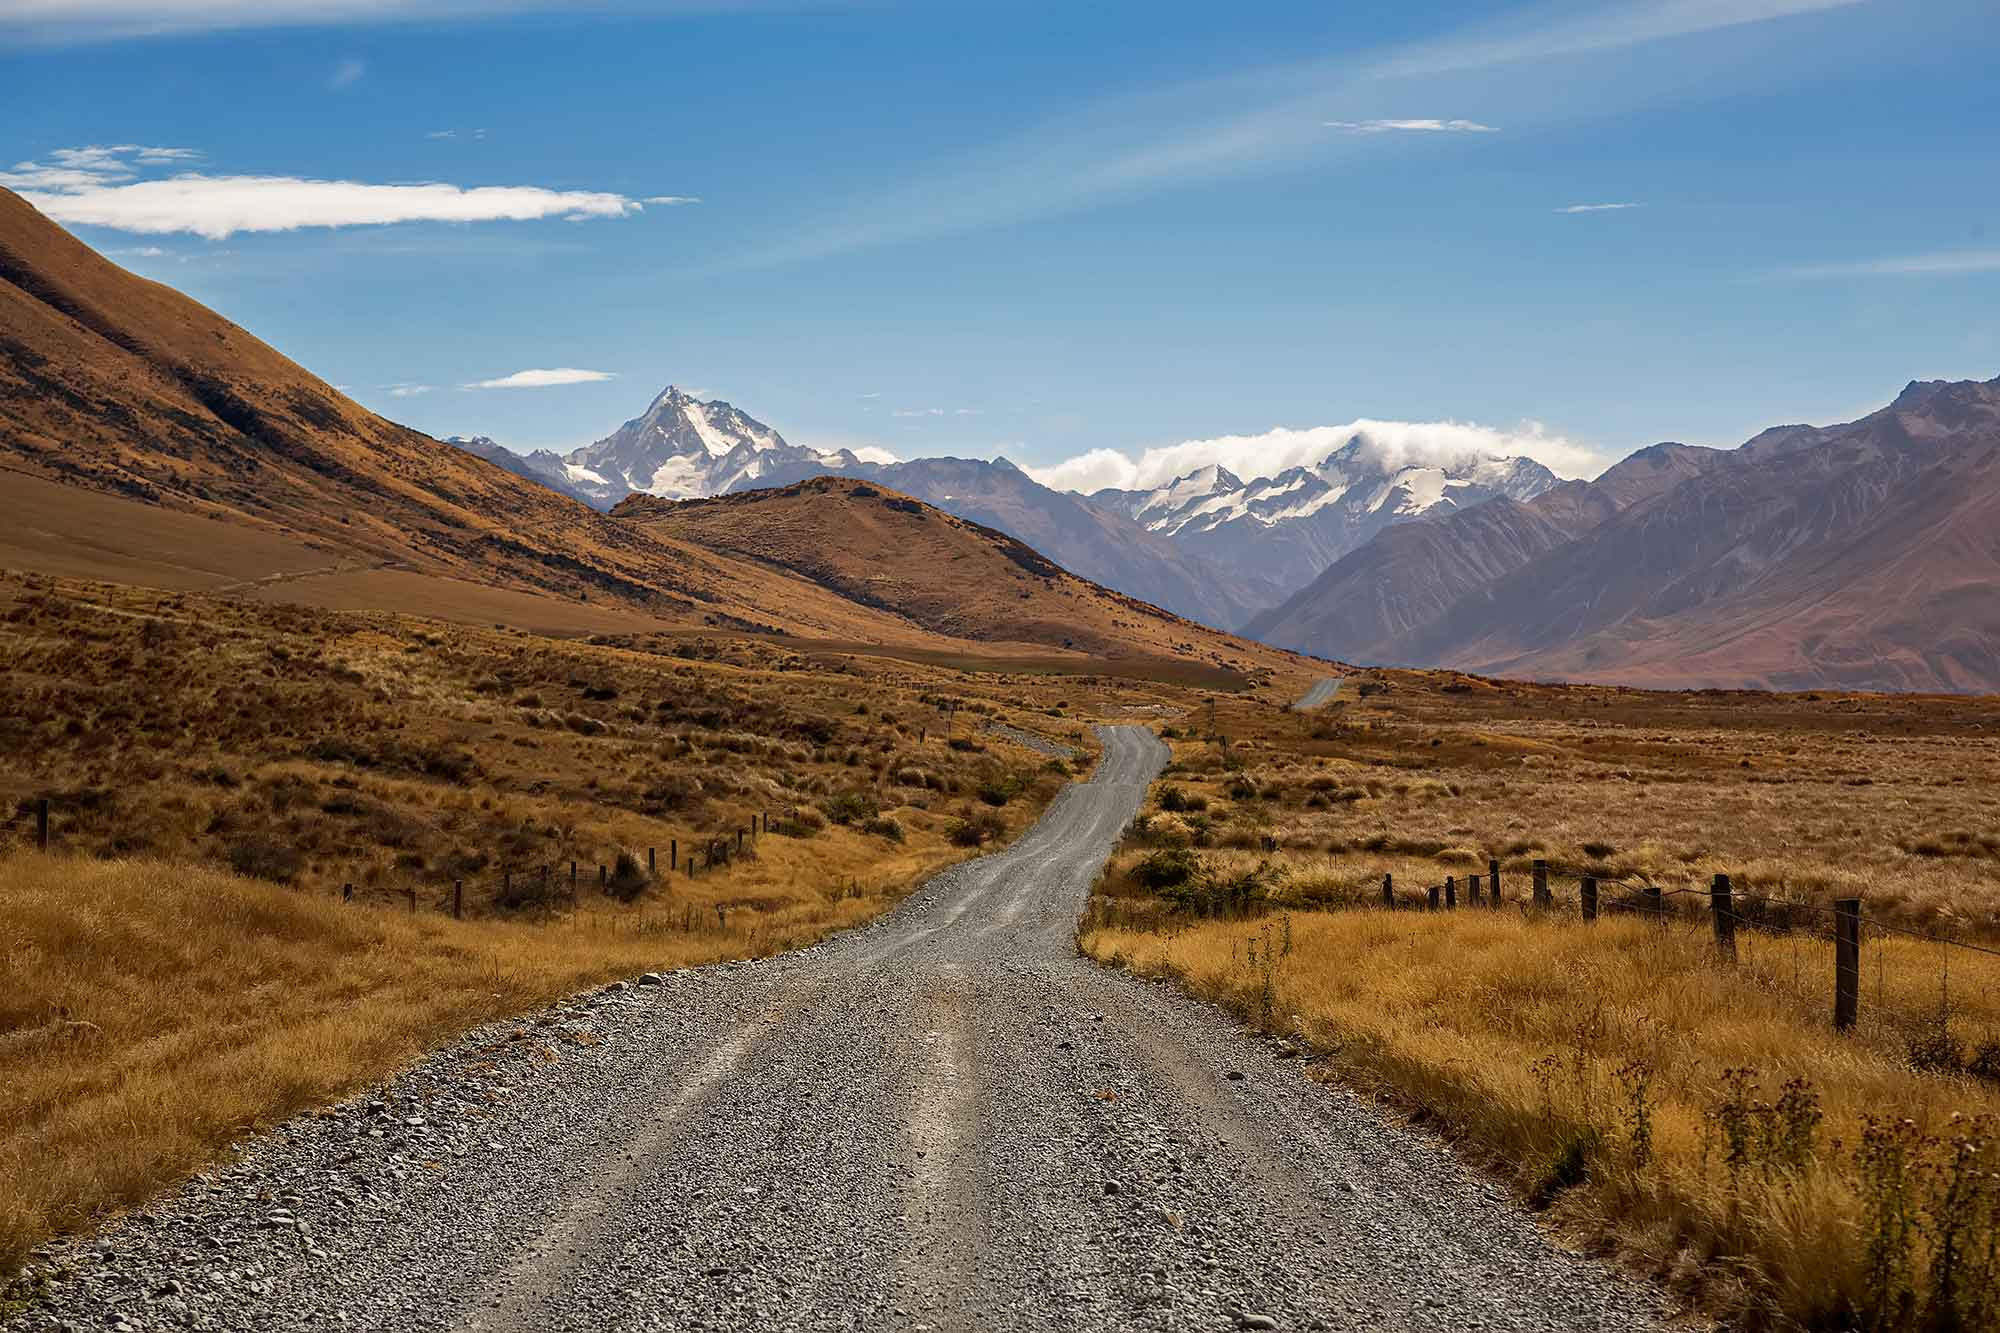 Rangitata Valley, New Zealand. © Ulli Maier & Nisa Maier